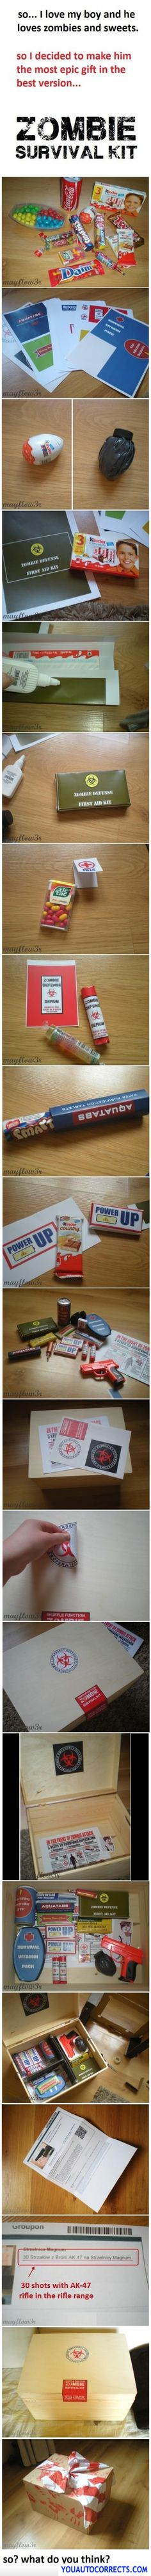 Zombie Survival Kit - oh my.  Need to make this for my brother's birthday.